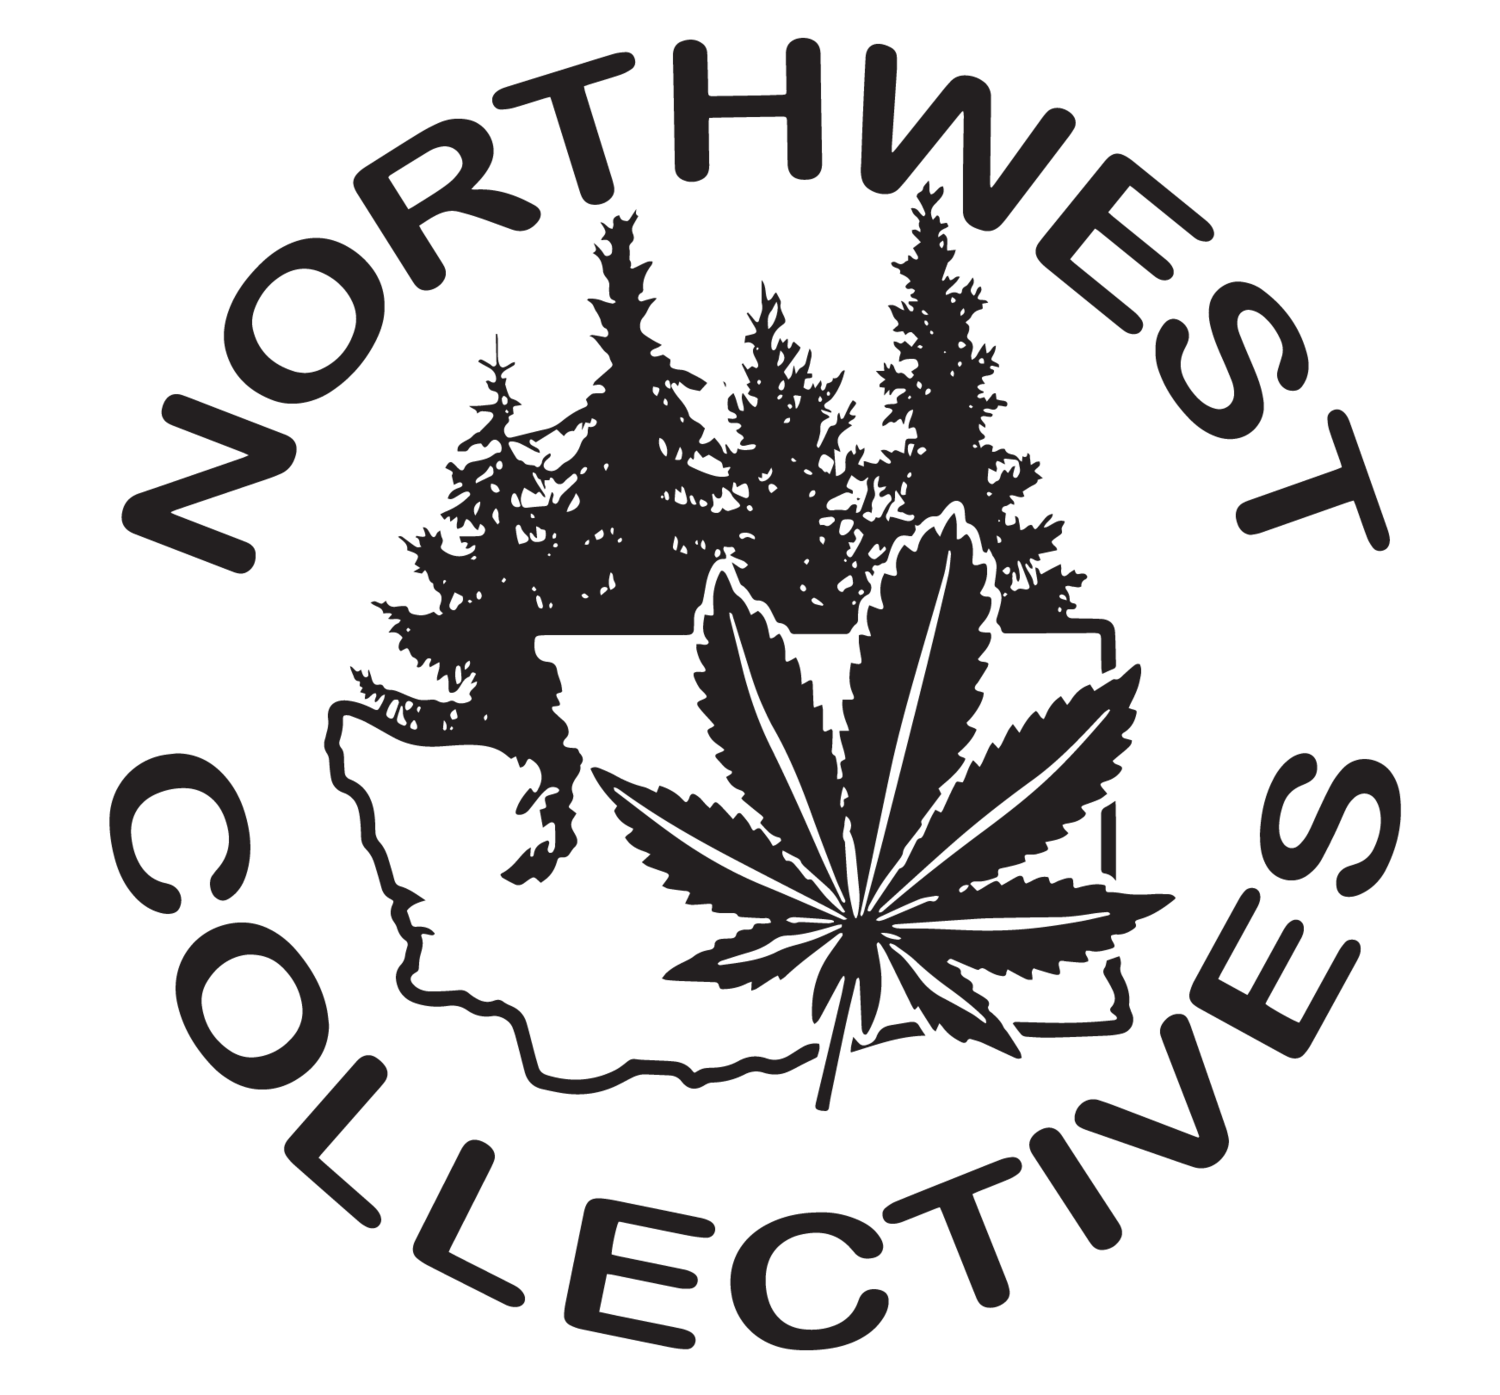 Northwest Collective